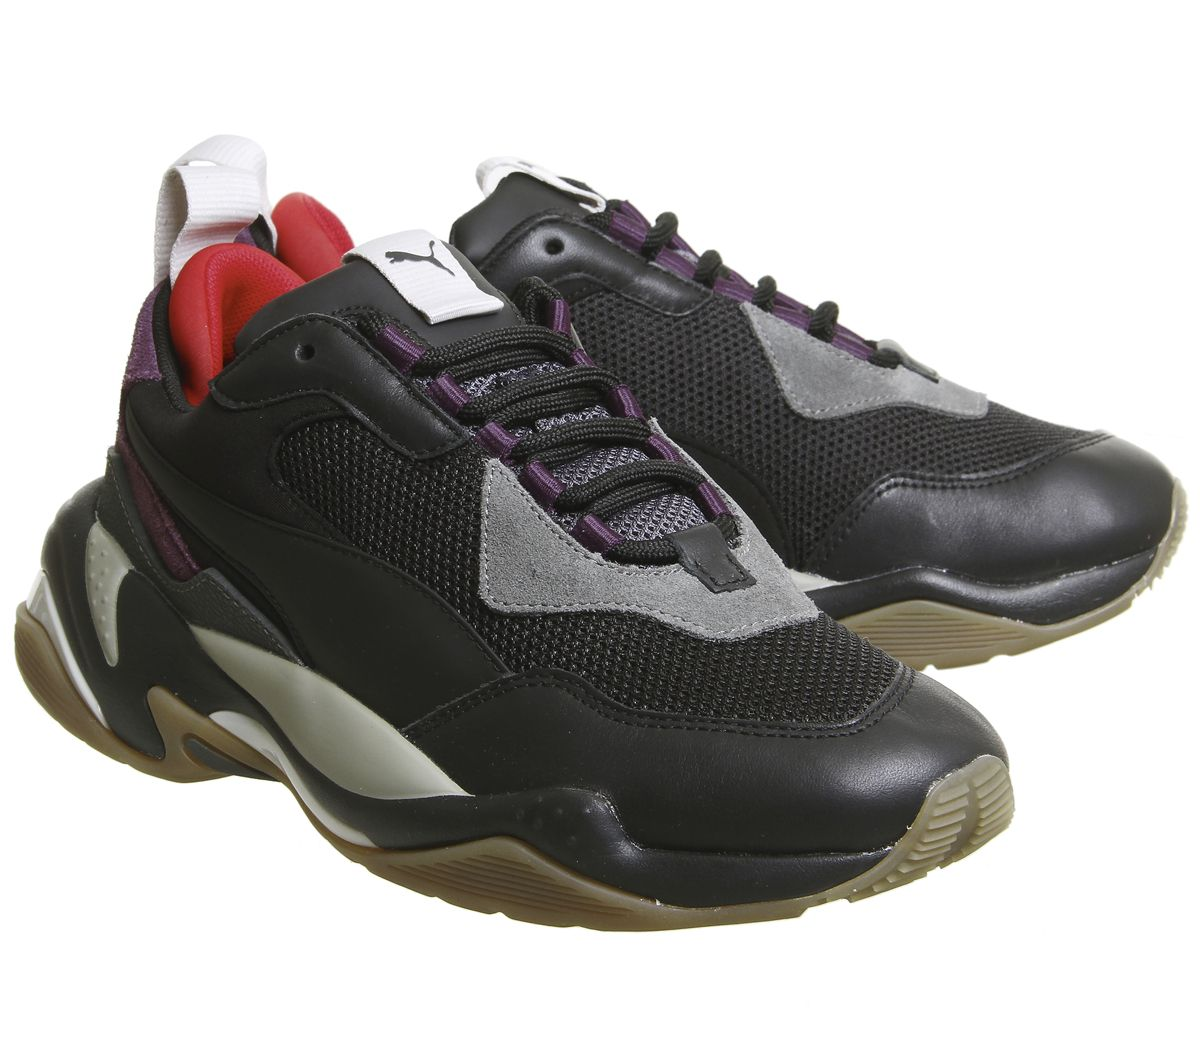 Details about Mens Puma Thunder Spectra Trainers Black Grey Purple Gum  Trainers Shoes